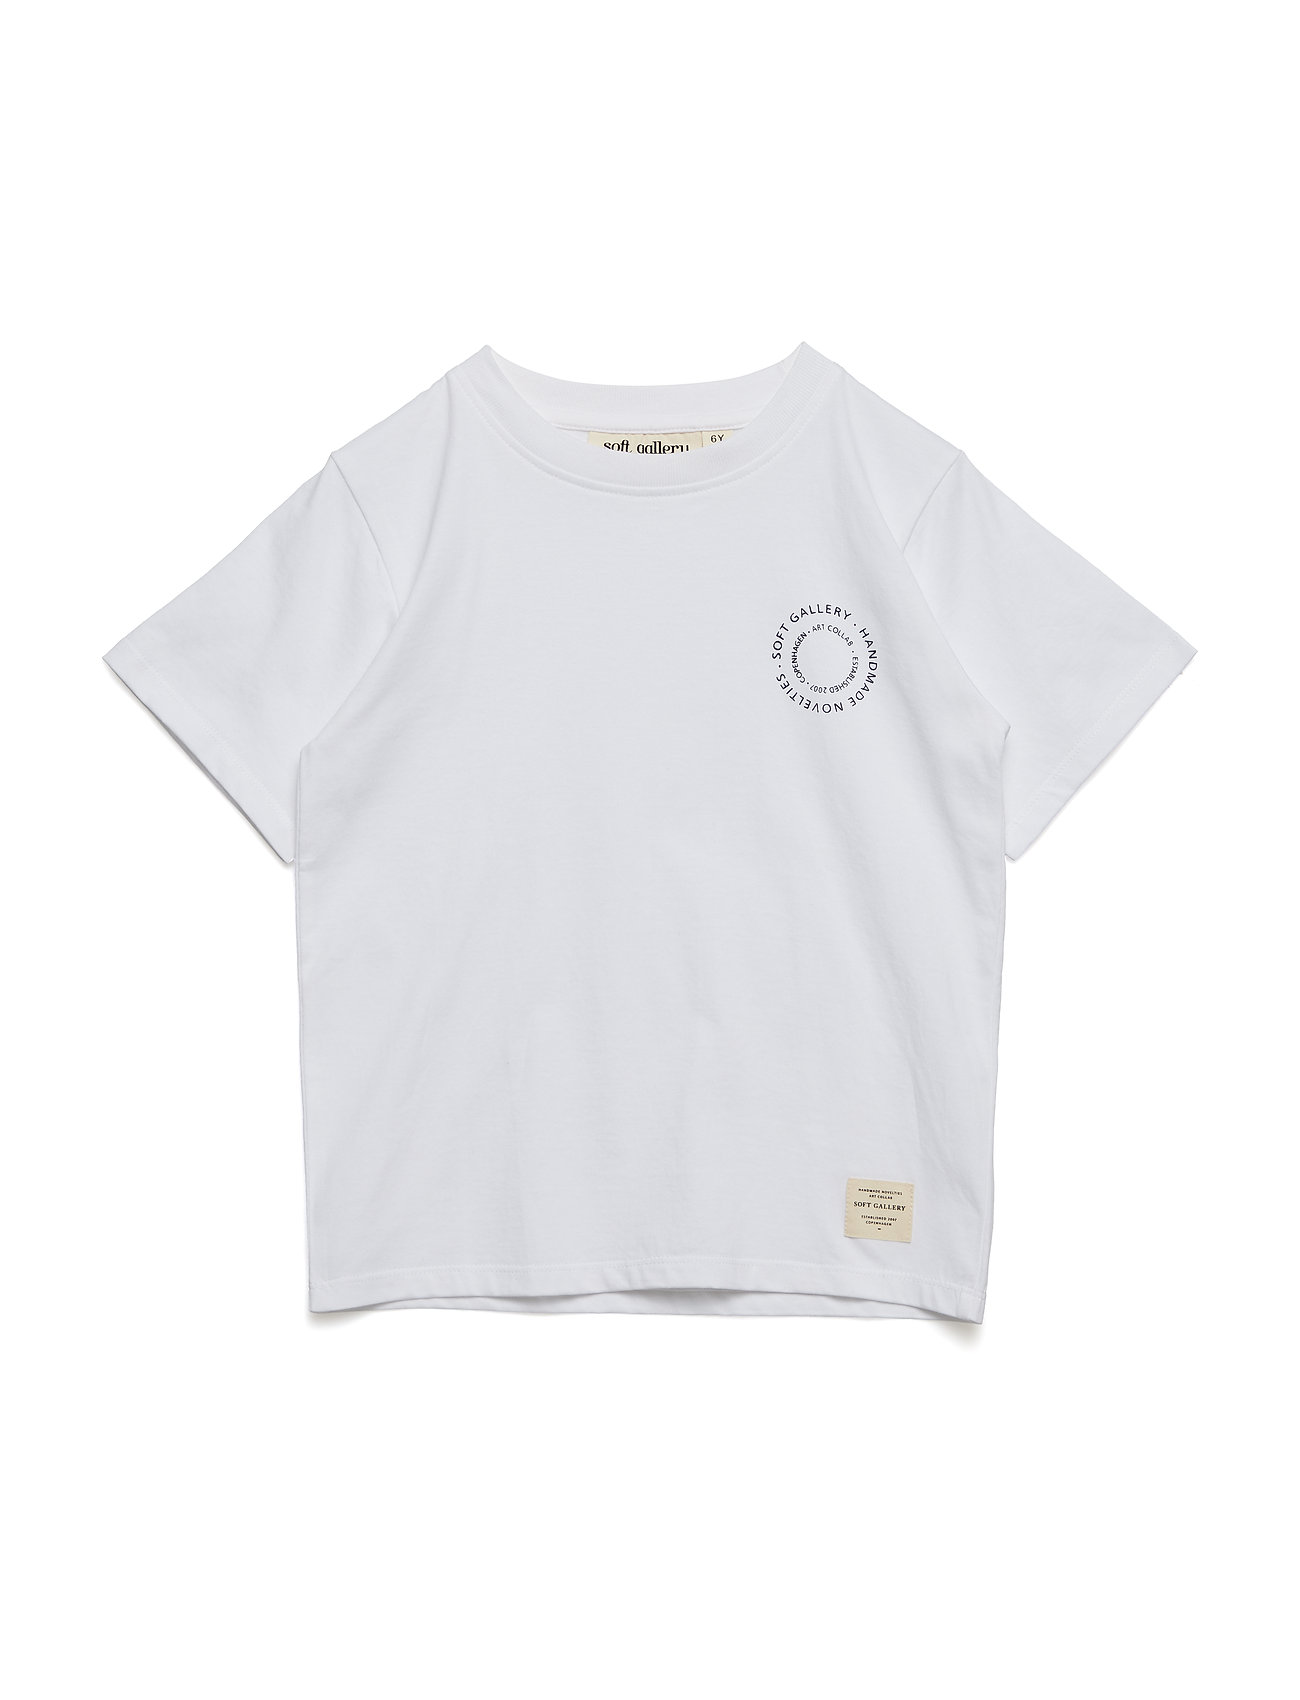 Soft Gallery Asger T-shirt - WHITE, LOGO STAMP